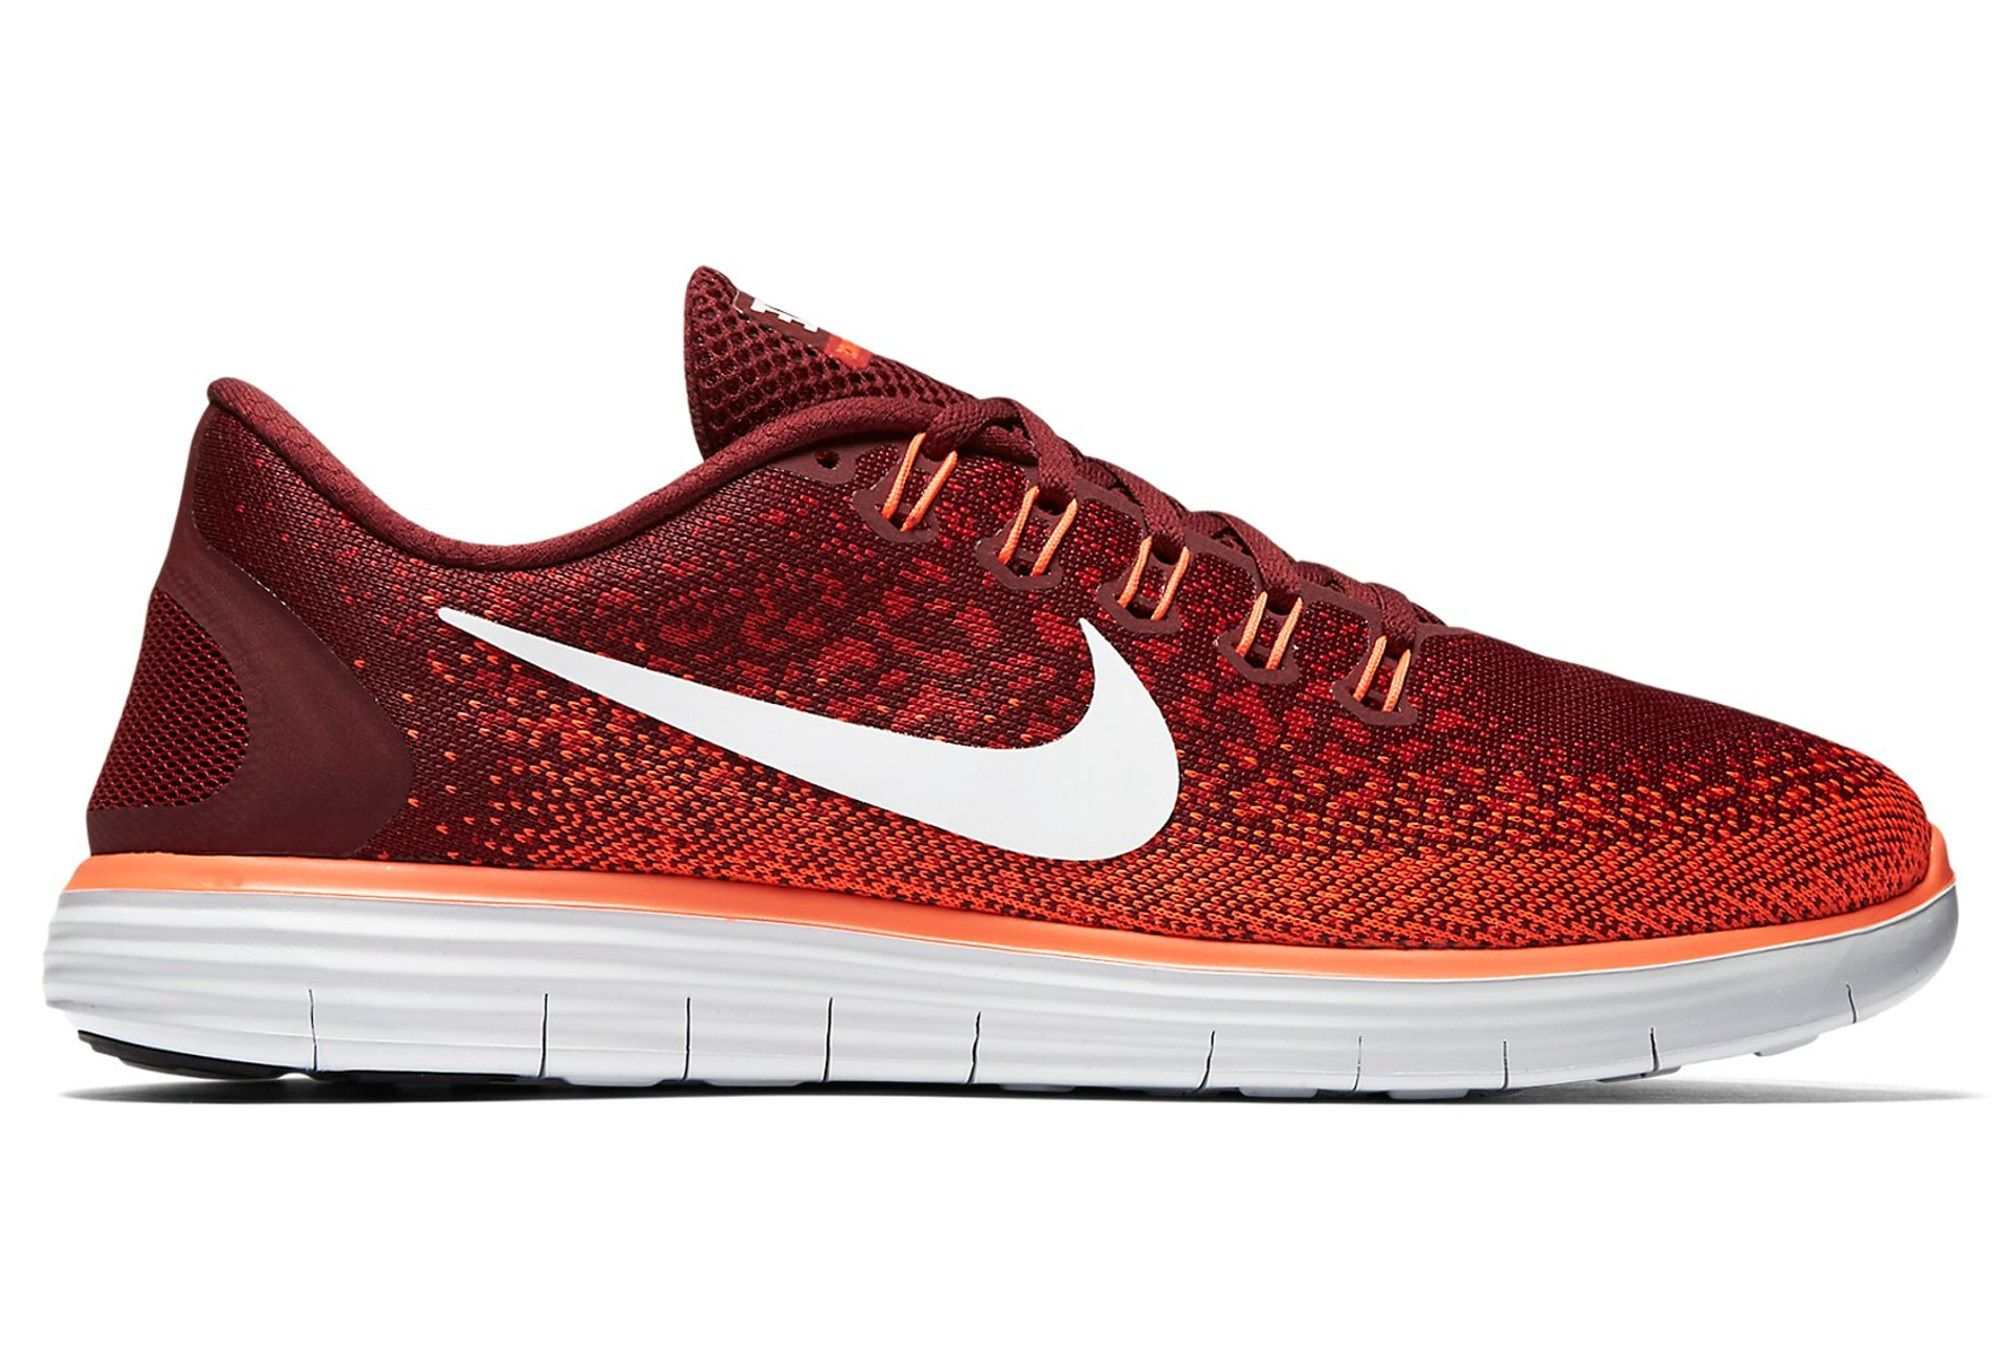 17 Best images about Nike Free on Pinterest | Distance, Running and Nike  free runs